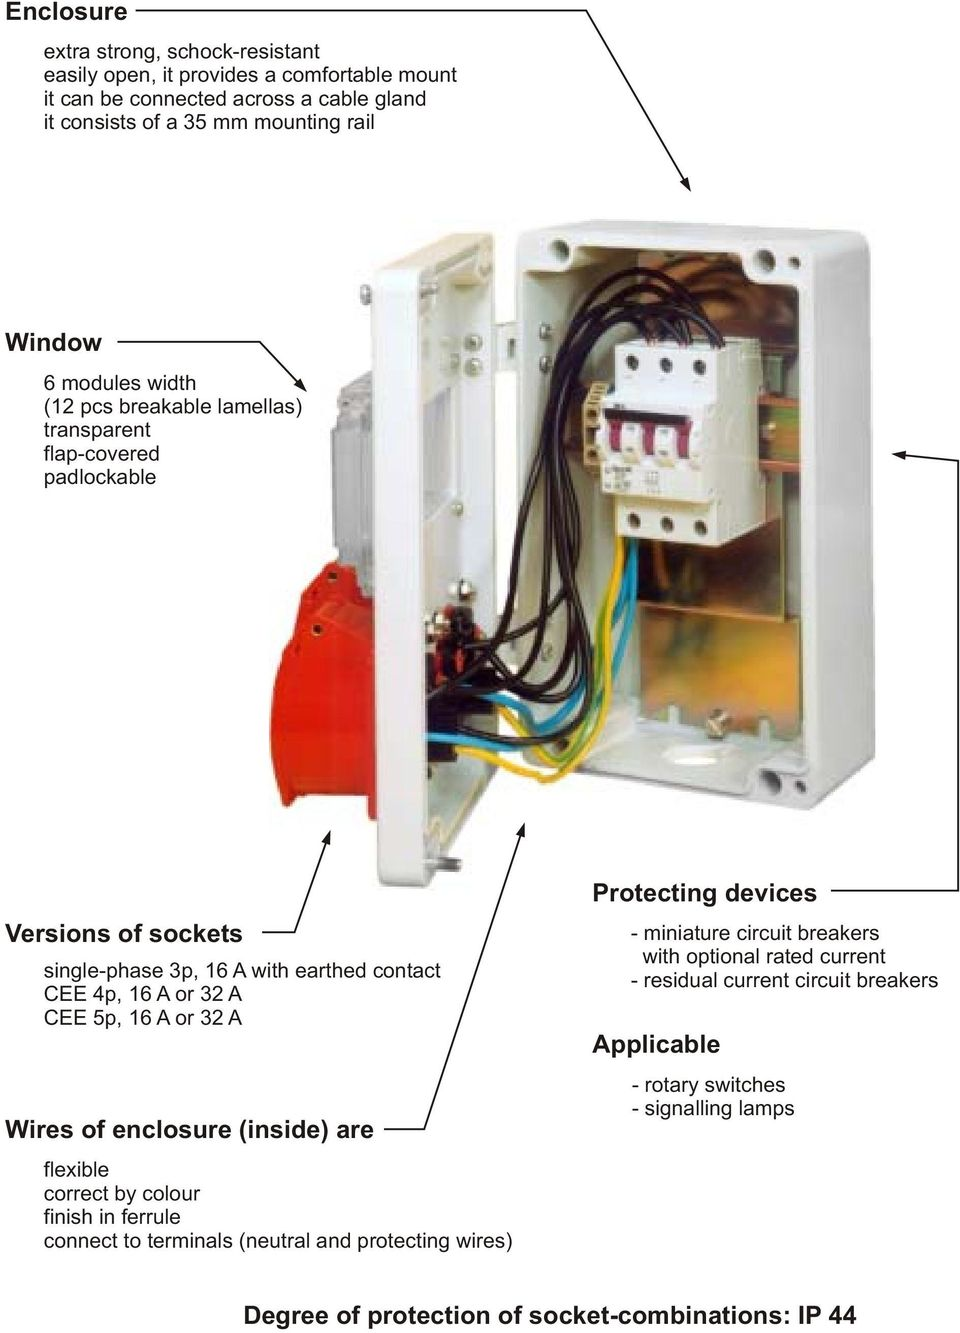 Assembled Socket Combinations Pdf Faz Miniature Circuit Breakers 16 A Or 32 Wires Of Enclosure Inside Are Flexible Correct By Colour